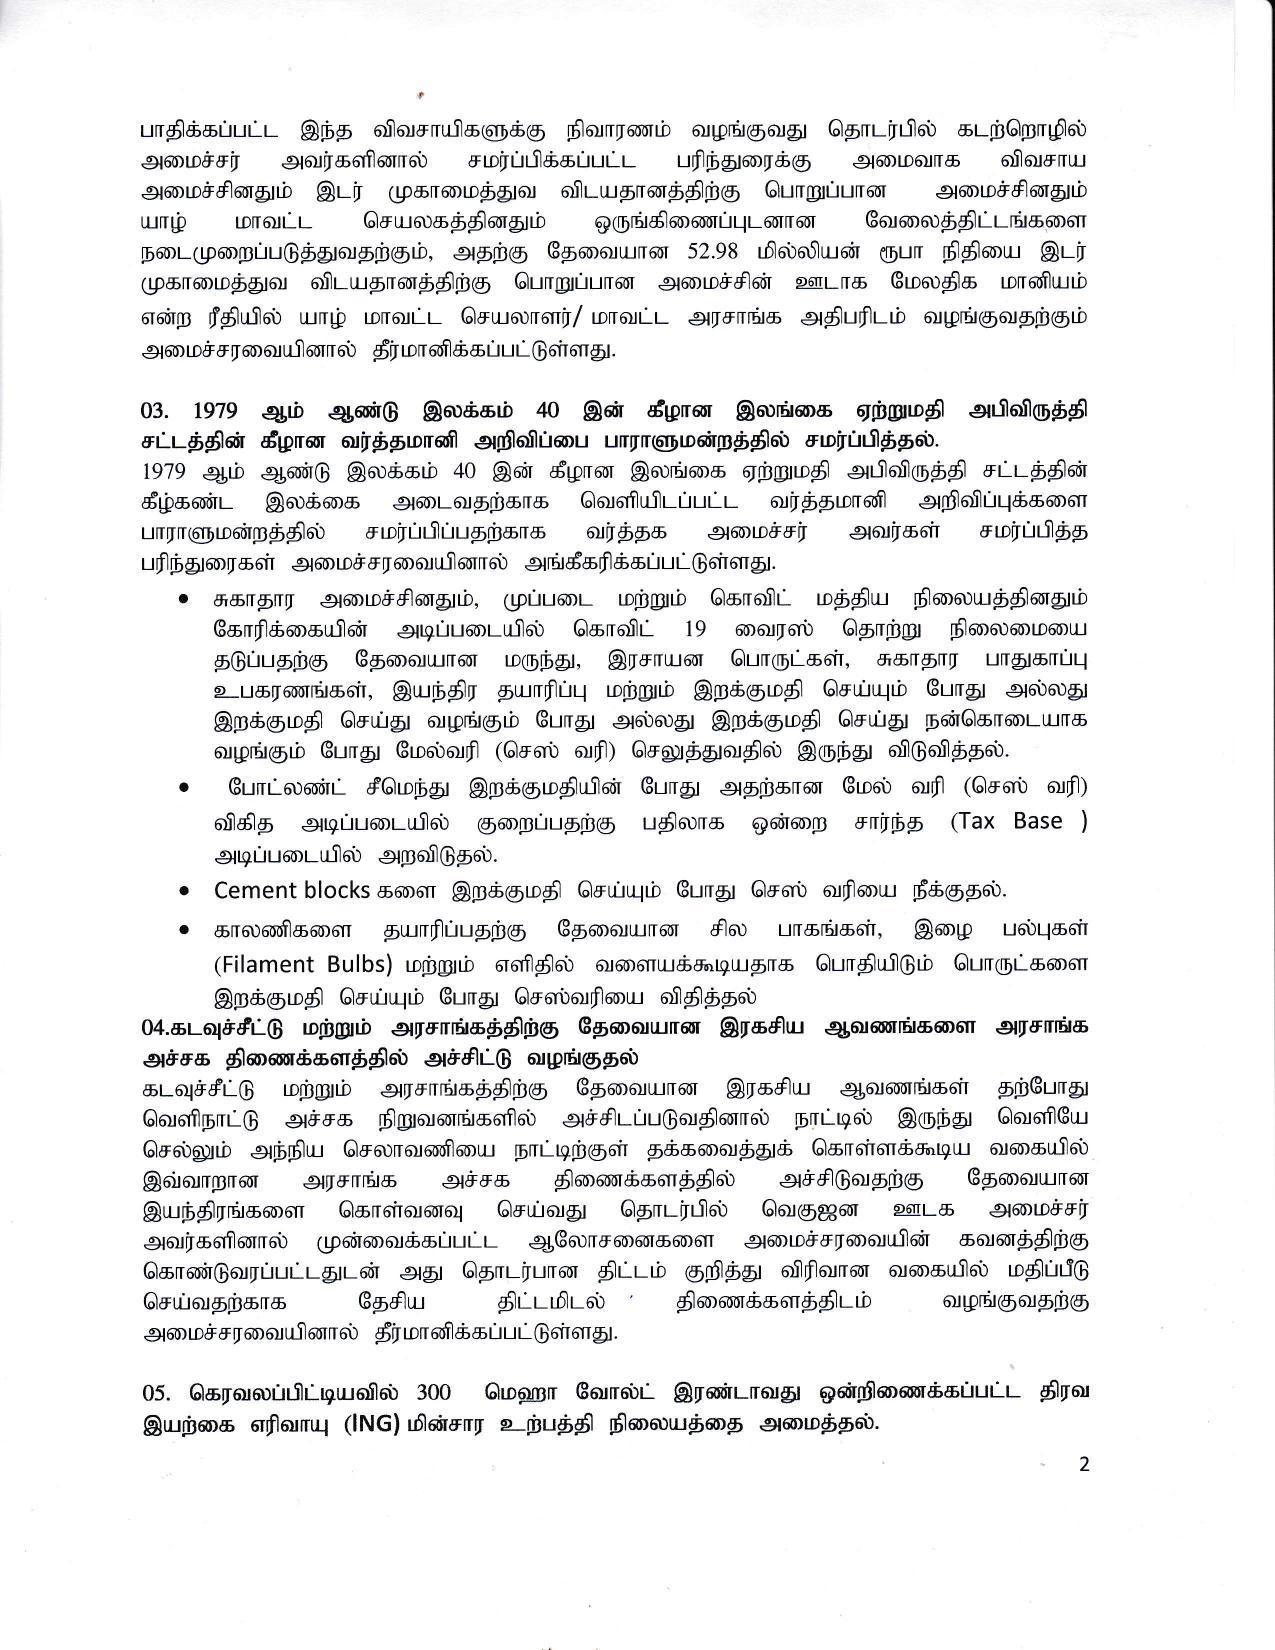 Cabinet Decision on 16.09.2020 0 Tamil 1 page 002